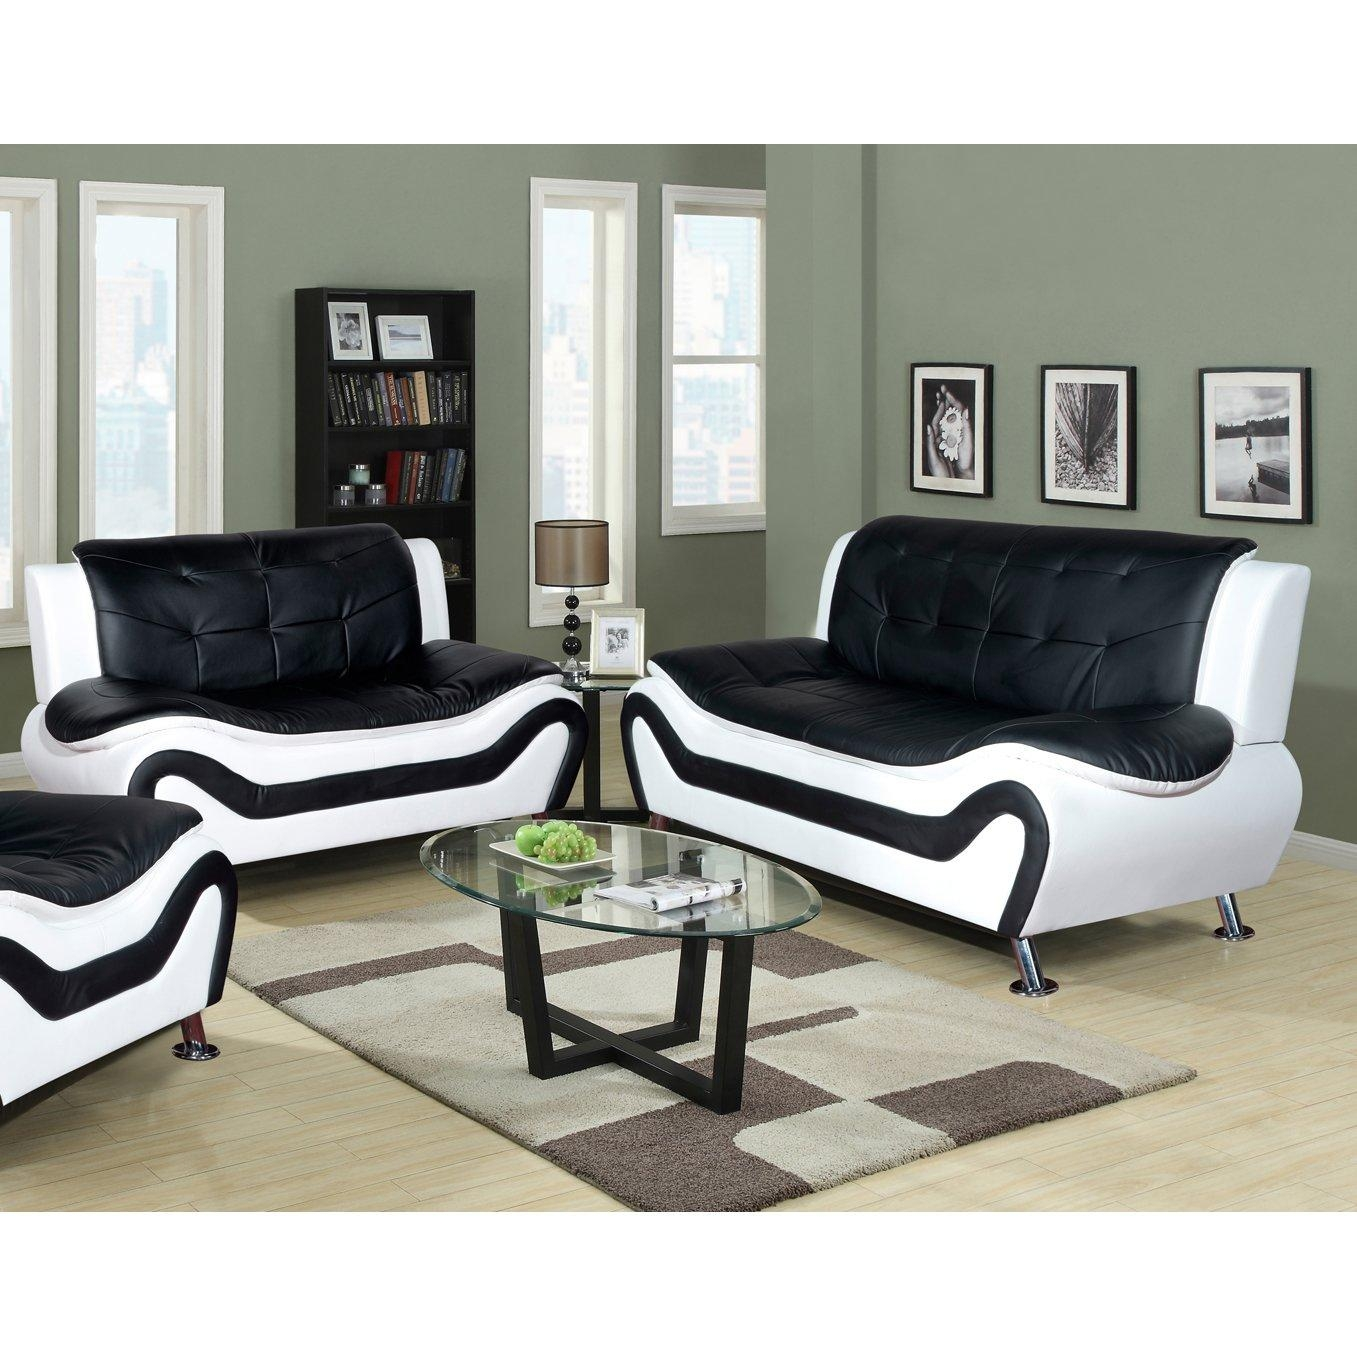 Living Room: Excellent Sofa And Loveseat Sets Discount Sofa And Throughout Black And White Sofas And Loveseats (View 5 of 20)